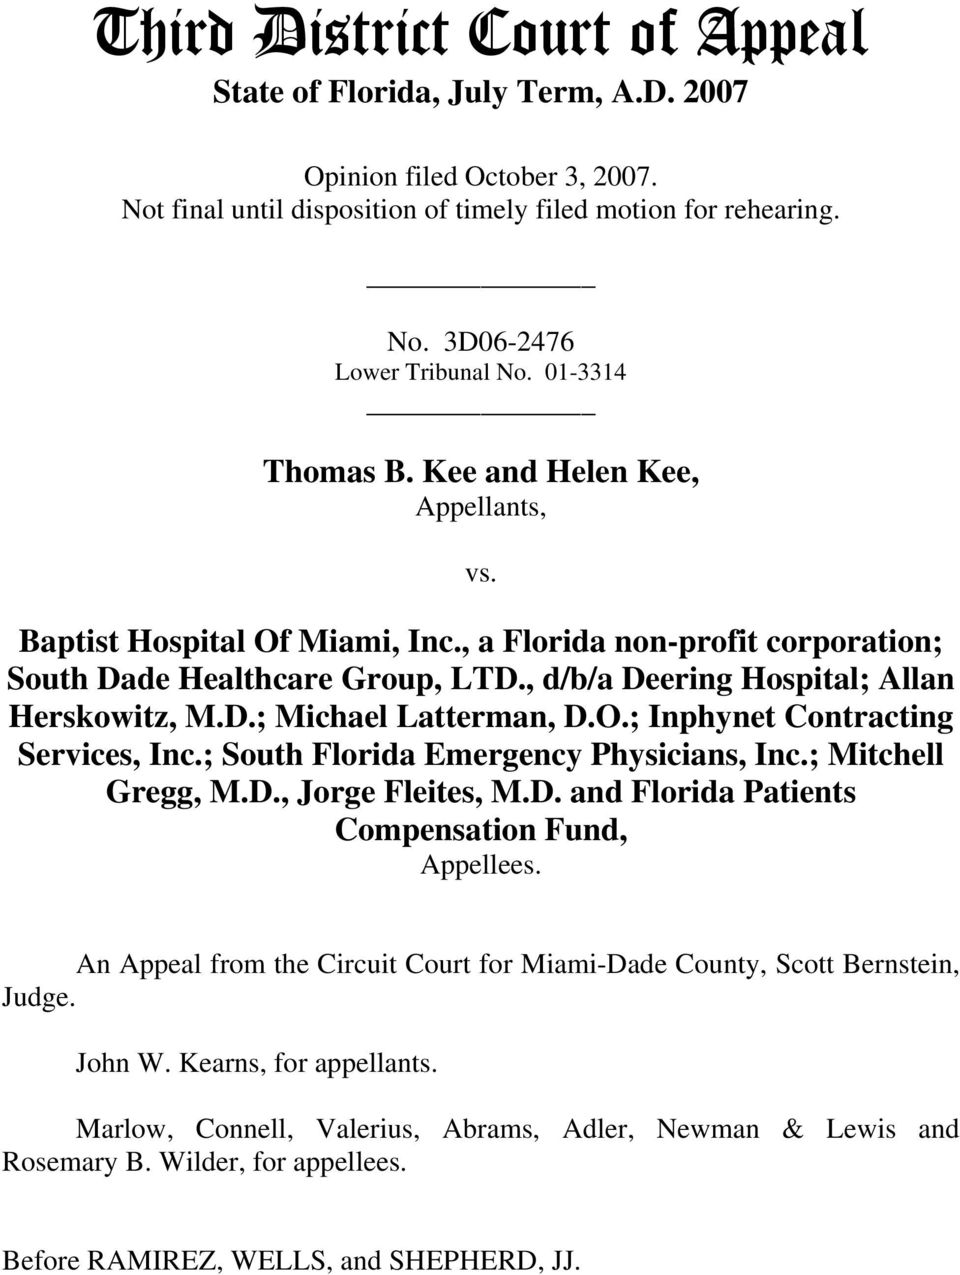 D.; Michael Latterman, D.O.; Inphynet Contracting Services, Inc.; South Florida Emergency Physicians, Inc.; Mitchell Gregg, M.D., Jorge Fleites, M.D. and Florida Patients Compensation Fund, Appellees.